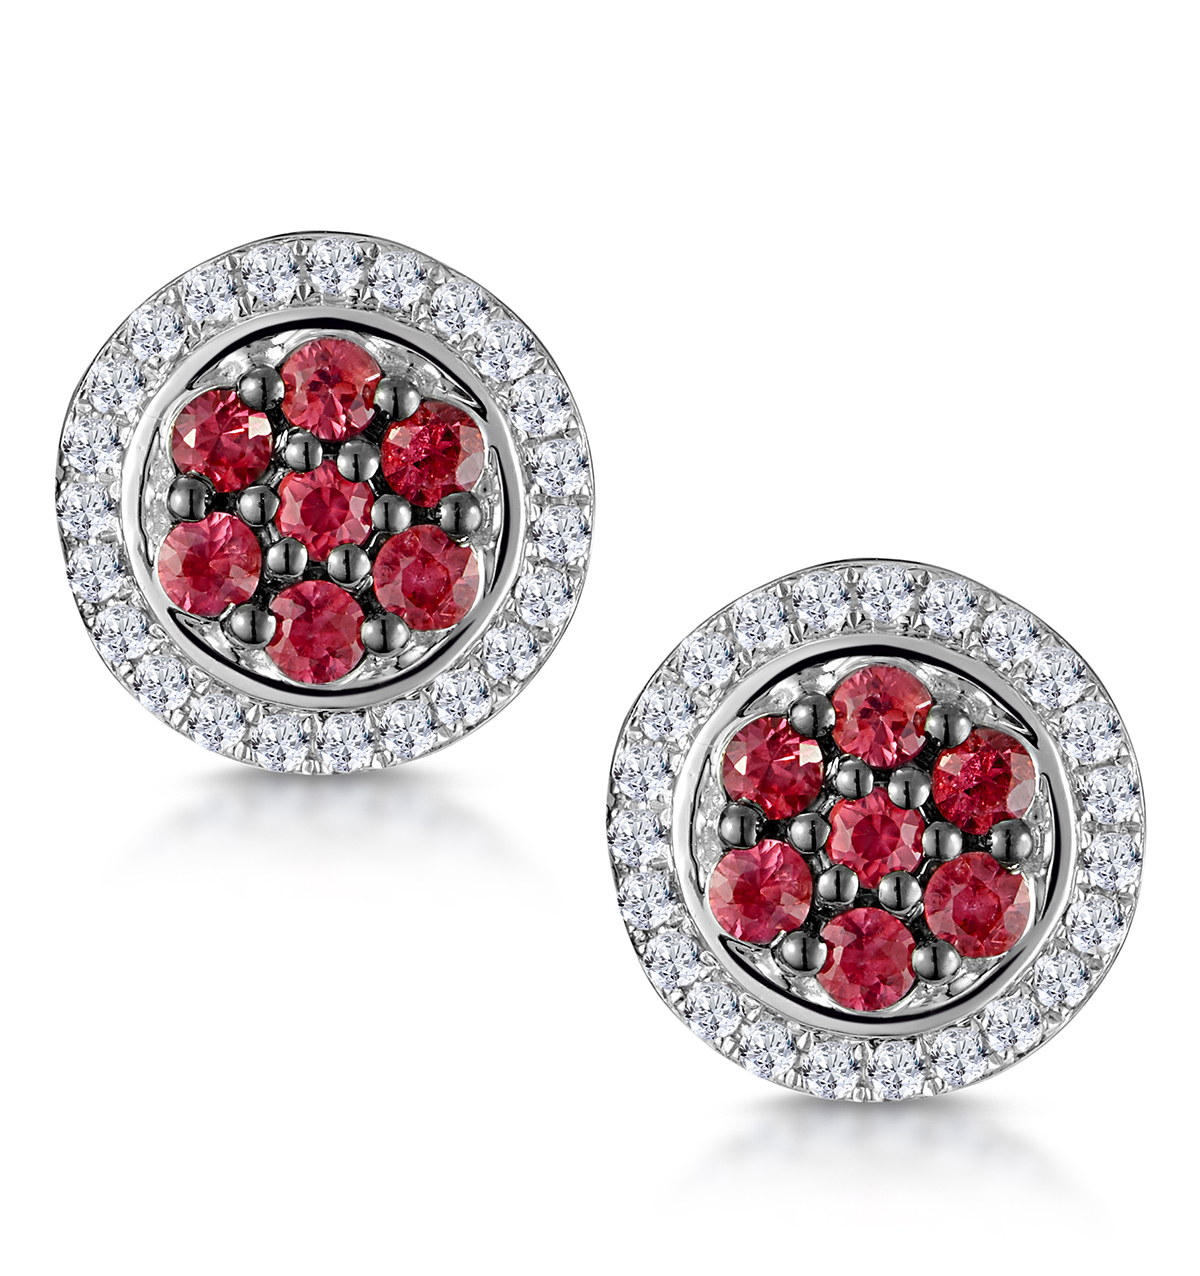 0.33CT RUBY AND DIAMOND STELLATO EARRINGS IN 9K WHITE GOLD